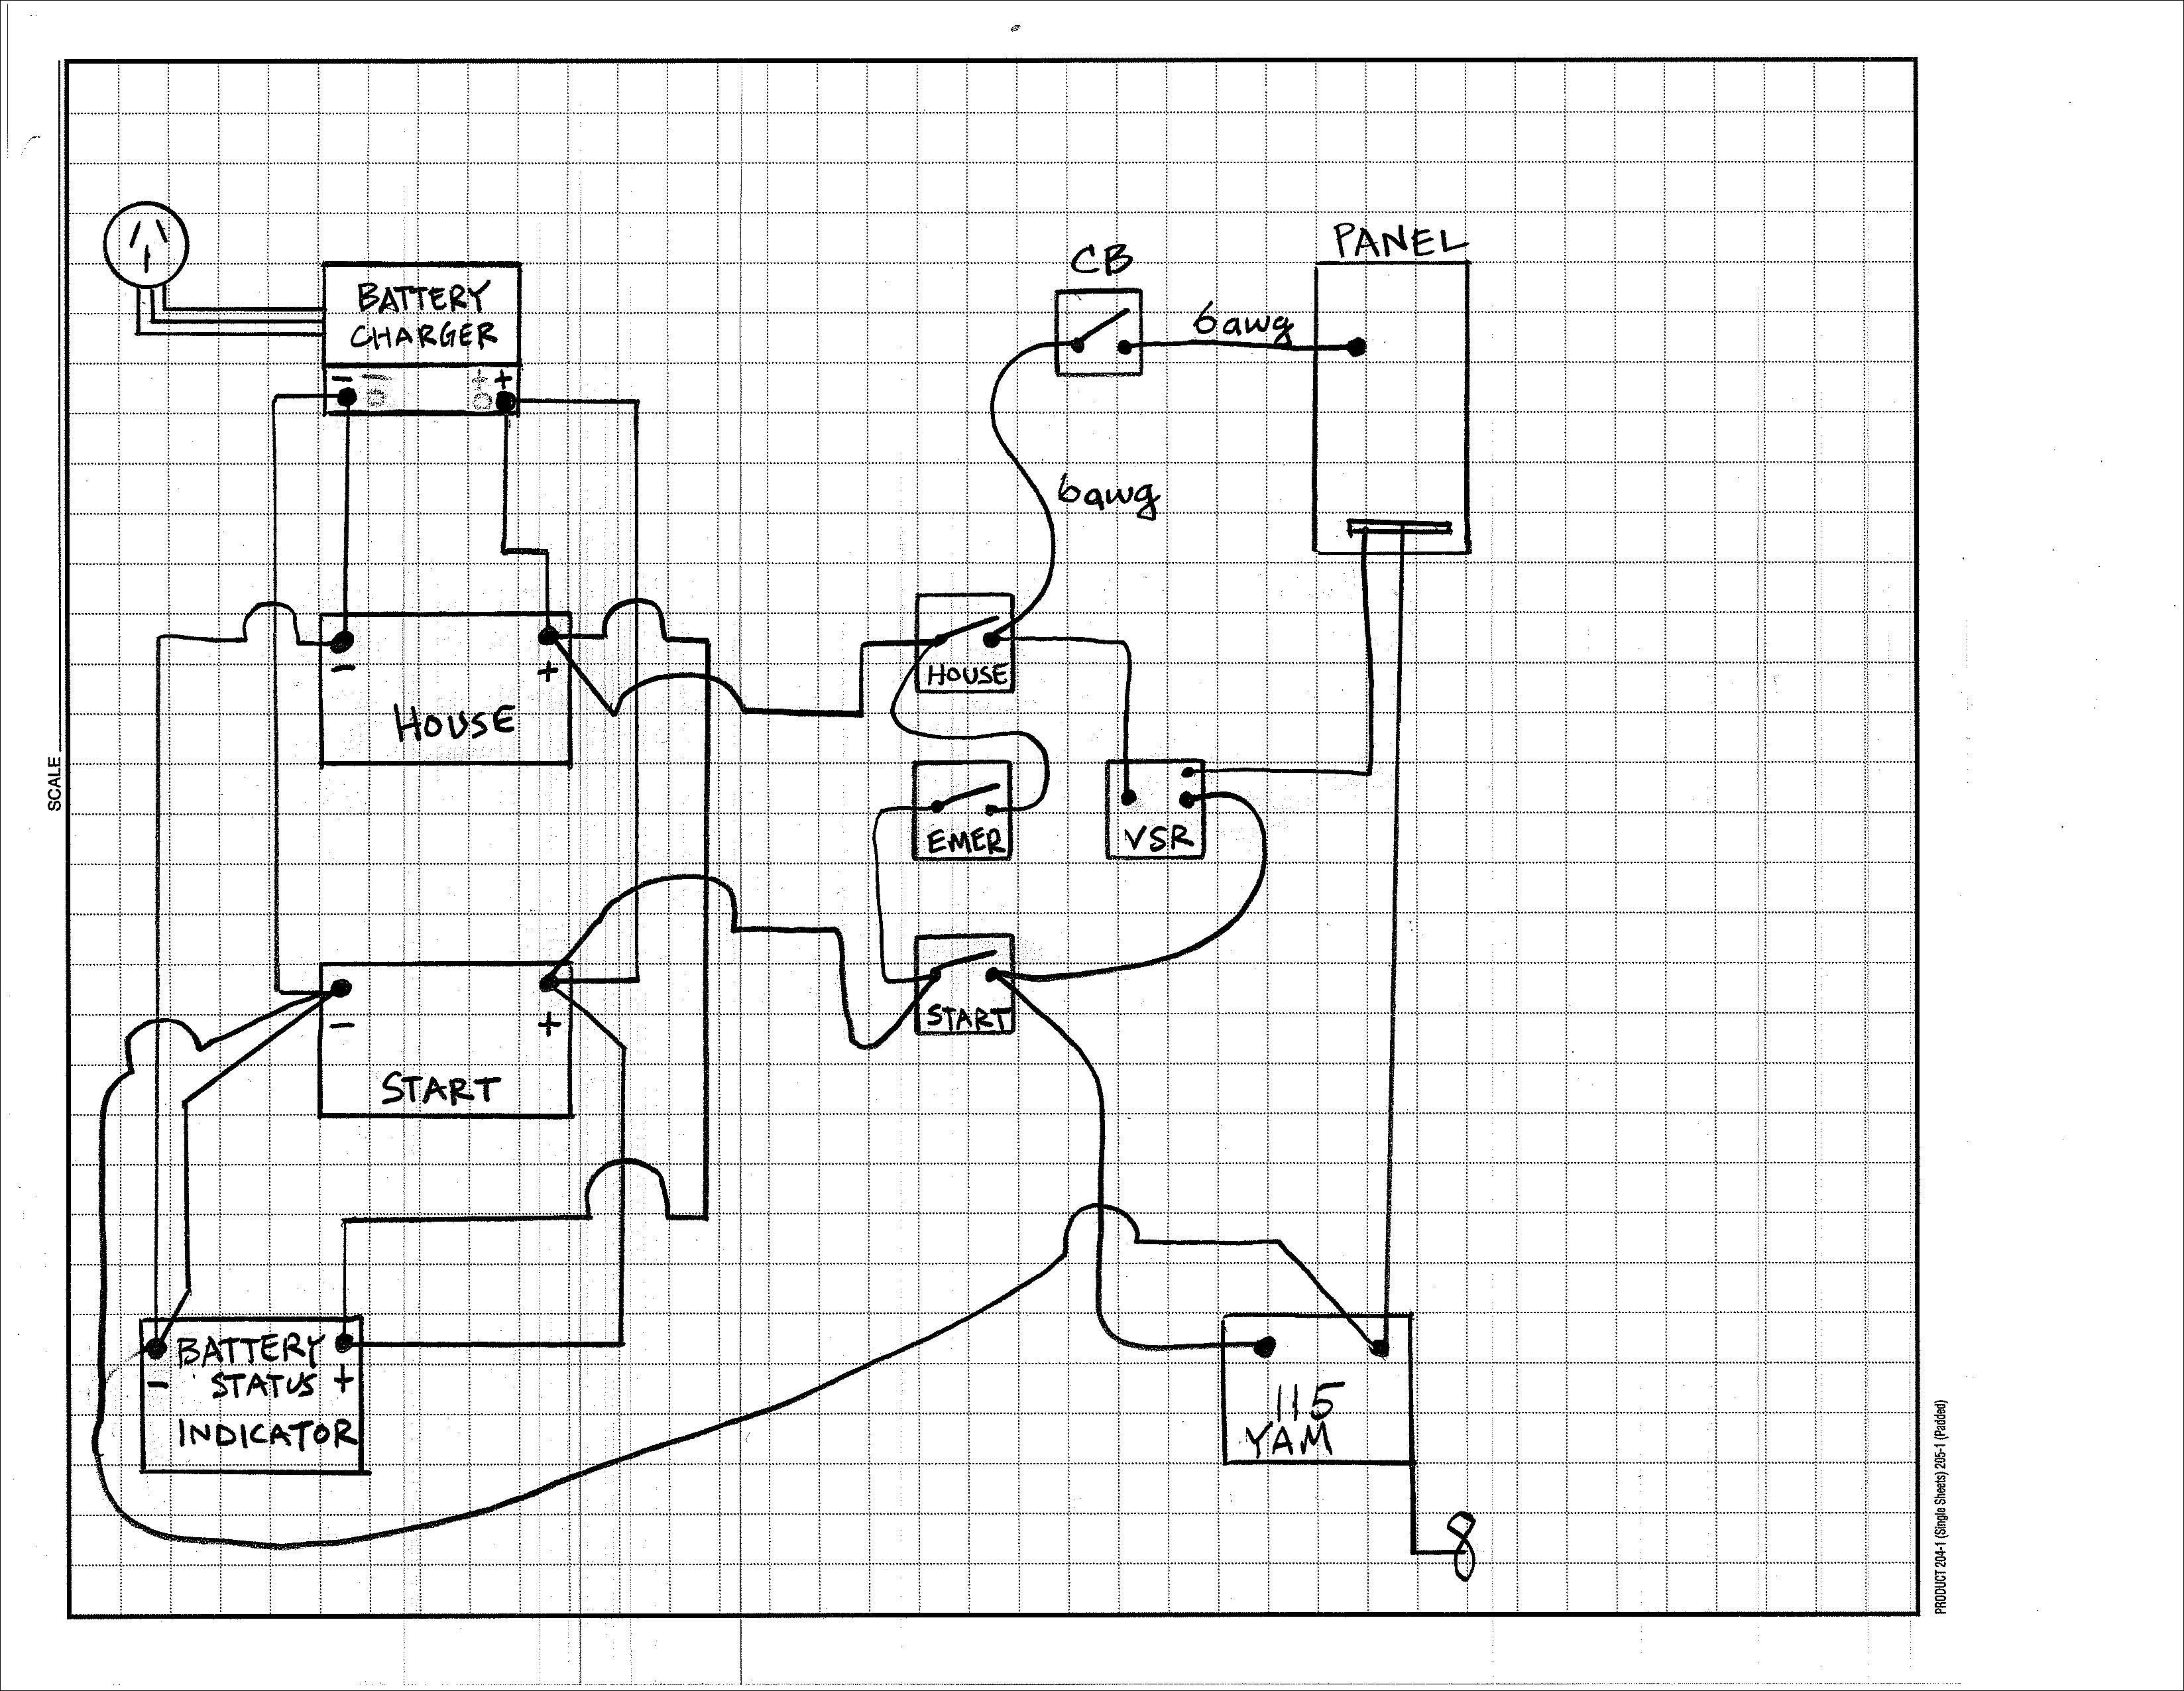 Marine Dual Battery Wiring Diagram 3 Battery Boat Wiring ... on light switch wiring diagram, relay switch wiring diagram, timer switch wiring diagram, multi battery isolator diagram, 12 volt switch wiring diagram, battery relay solenoid, led switch wiring diagram, battery on off switch, water pump switch wiring diagram, 240 volt switch wiring diagram, wall switch wiring diagram, auto on off switch diagram, winch switch wiring diagram, electrical switch wiring diagram, battery shut off switch wiring, selector switch wiring diagram, rv battery isolator diagram, dual switch wiring diagram, emergency stop switch wiring diagram, solenoid switch wiring diagram,